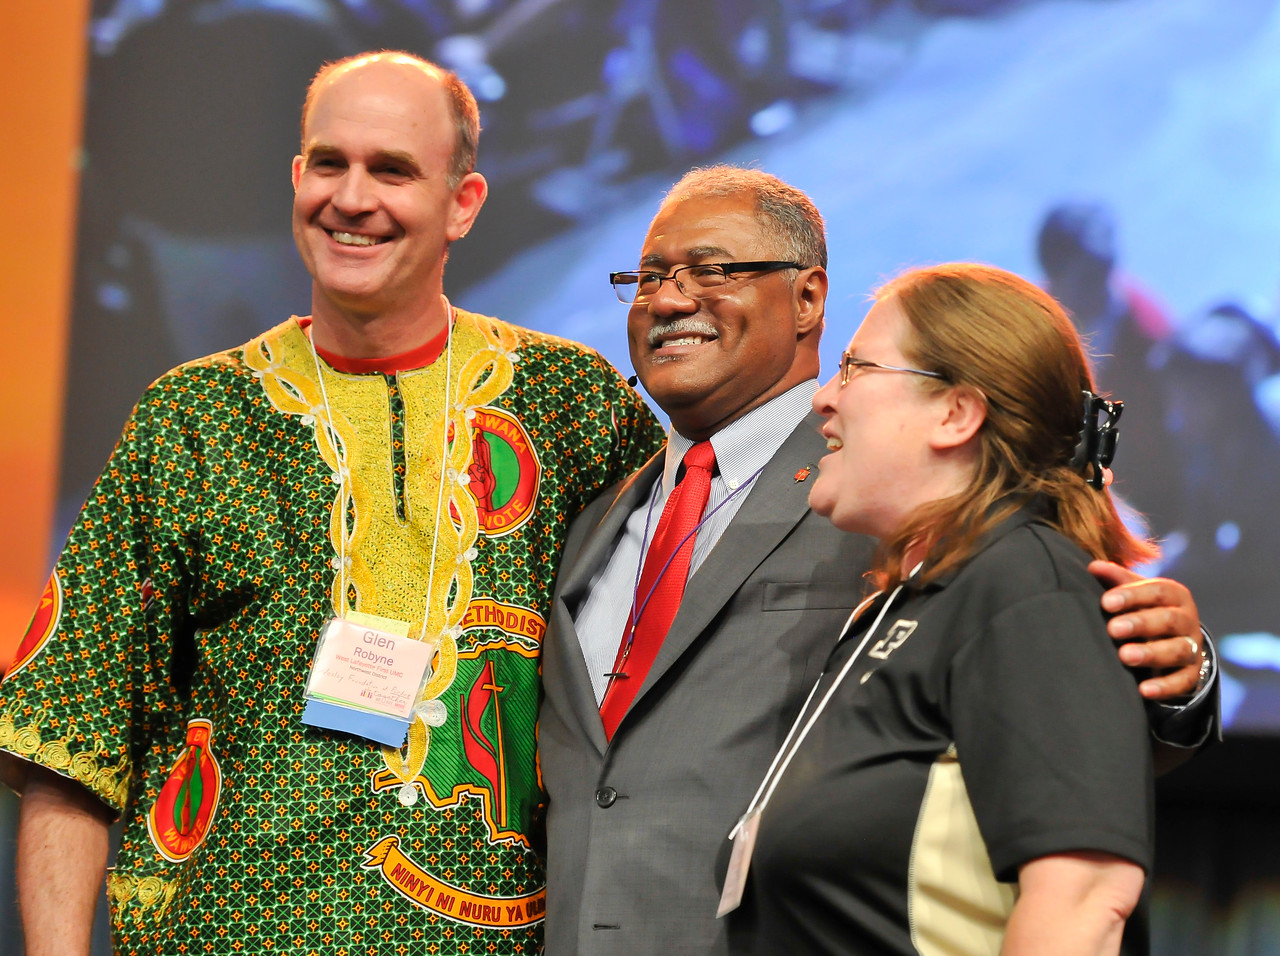 Bishop Julius C. Trimble (center) poses with Glen Robyne (left) and Lana Robyne of Wesley Foundation at Purdue at the Friday Plenary at the 2017 INUMC Annual Conference in Indianapolis.